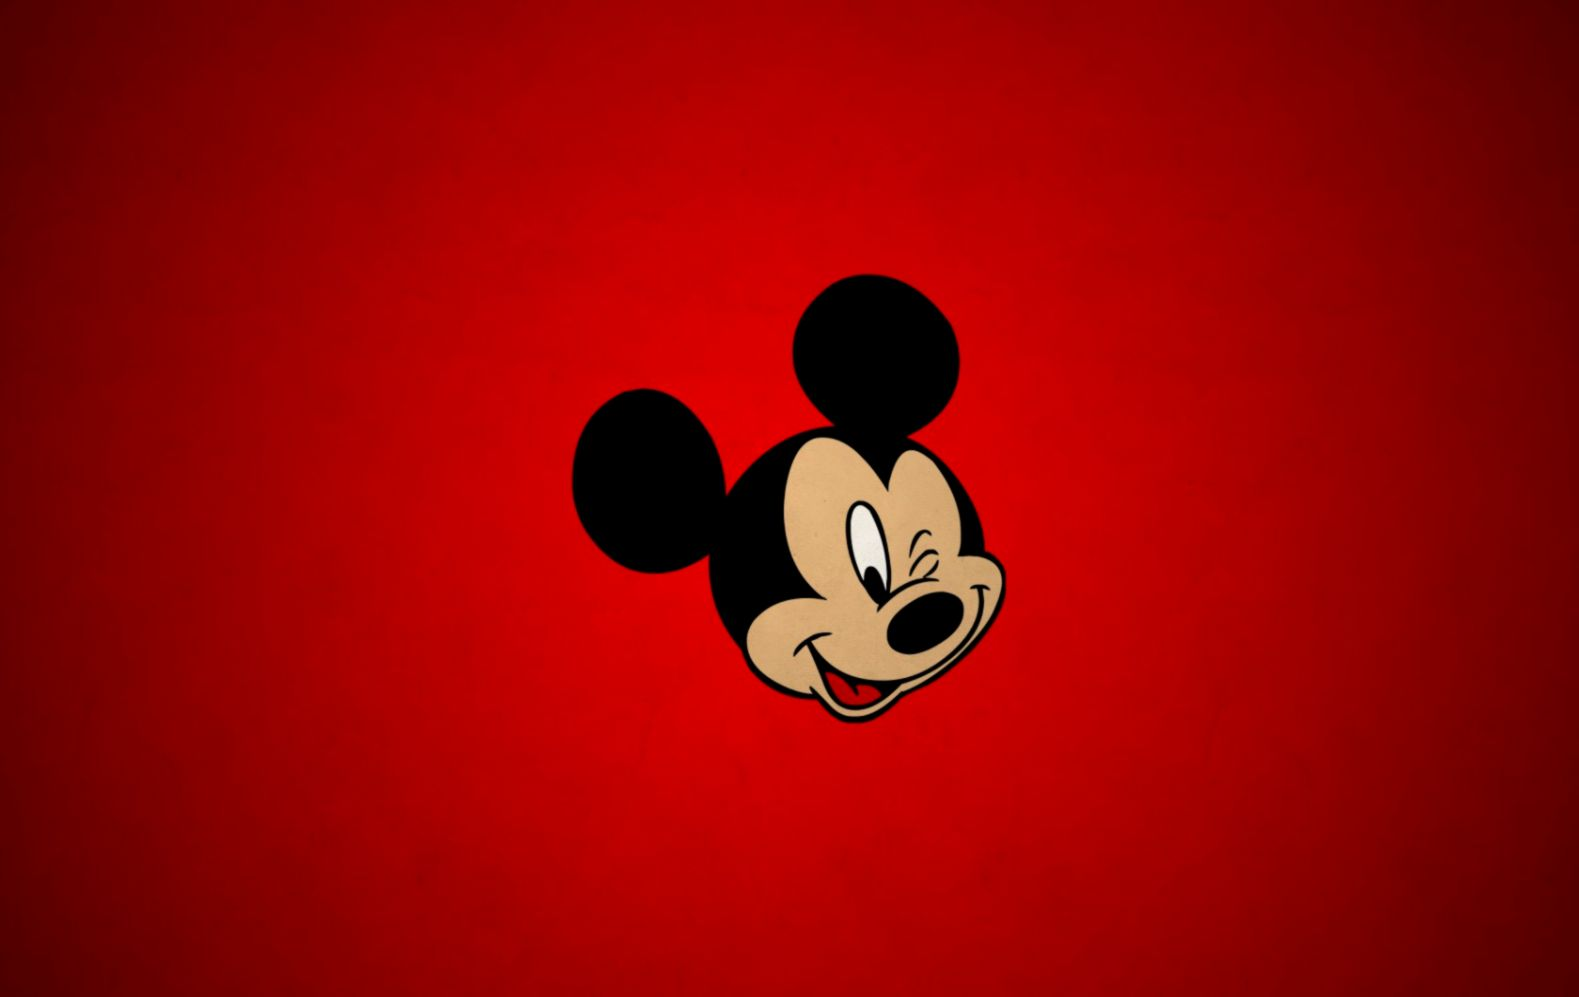 Mickey Mouse Disney iPhone Wallpapers POPSUGAR Tech Photo